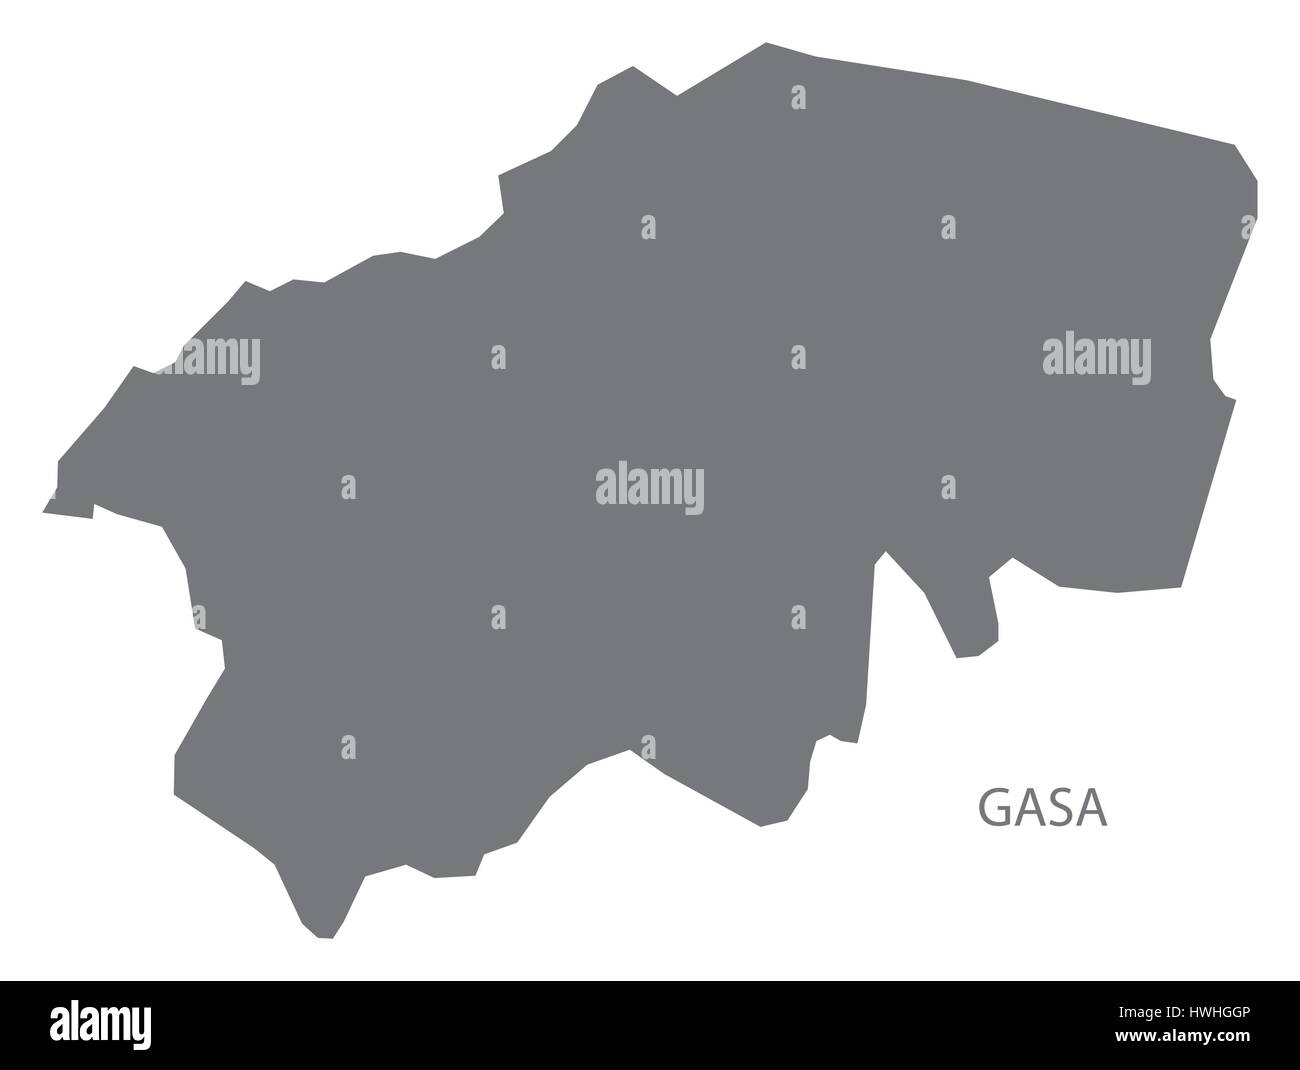 Gasa Bhutan district map grey illustration silhouette Stock Vector